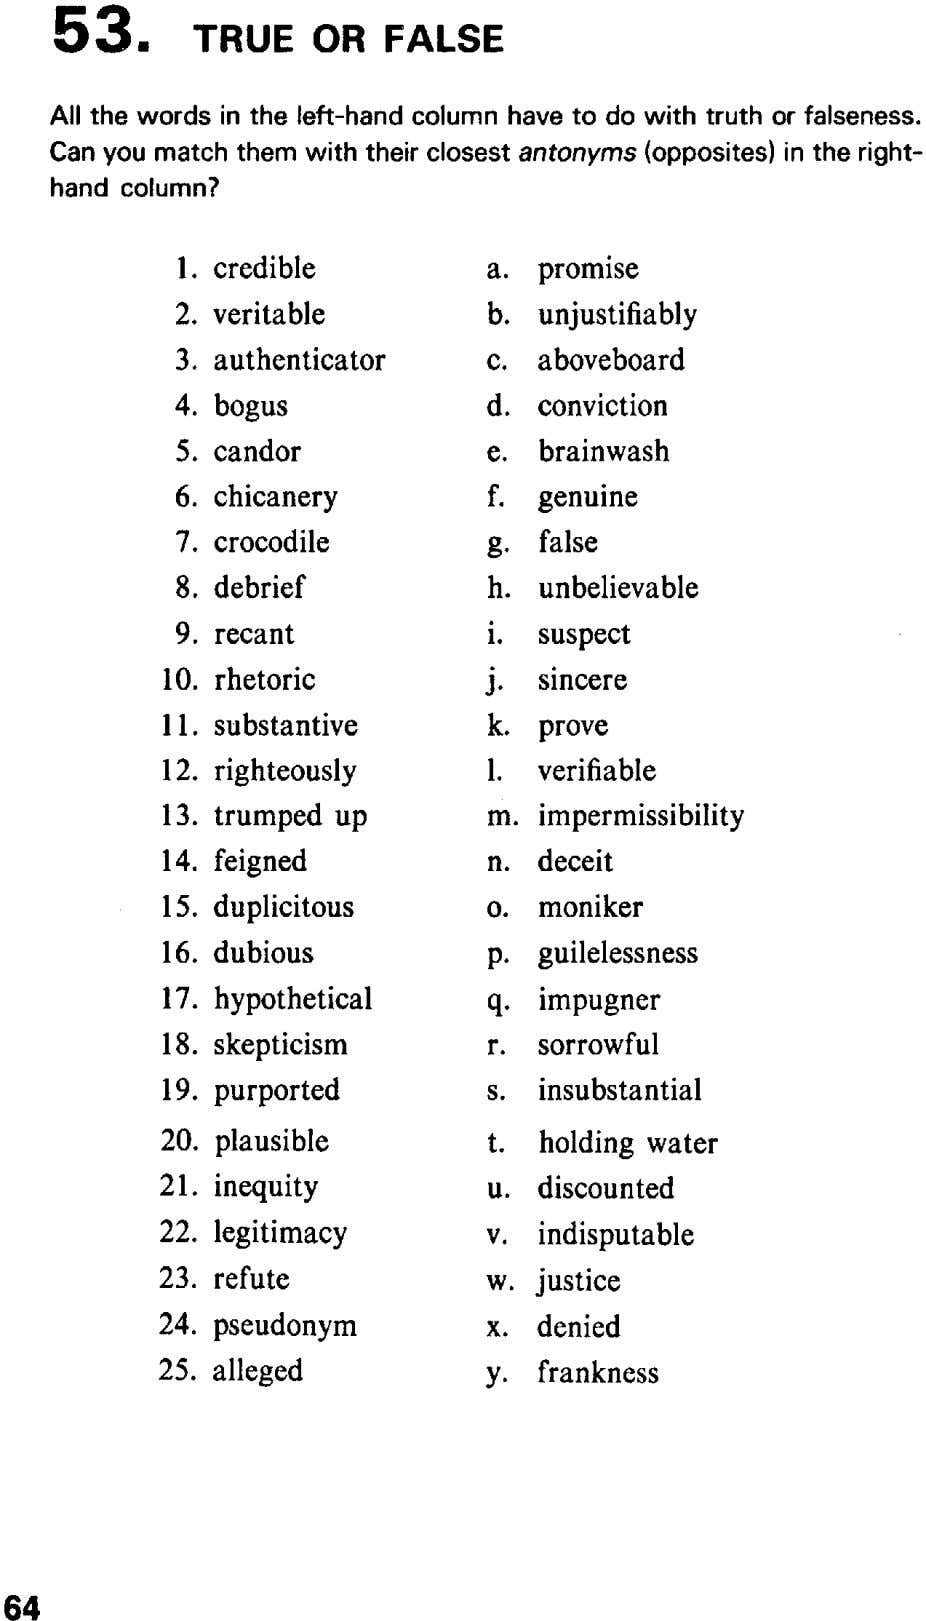 53. TRUE OR FALSE All the words in the left-hand column have to do with